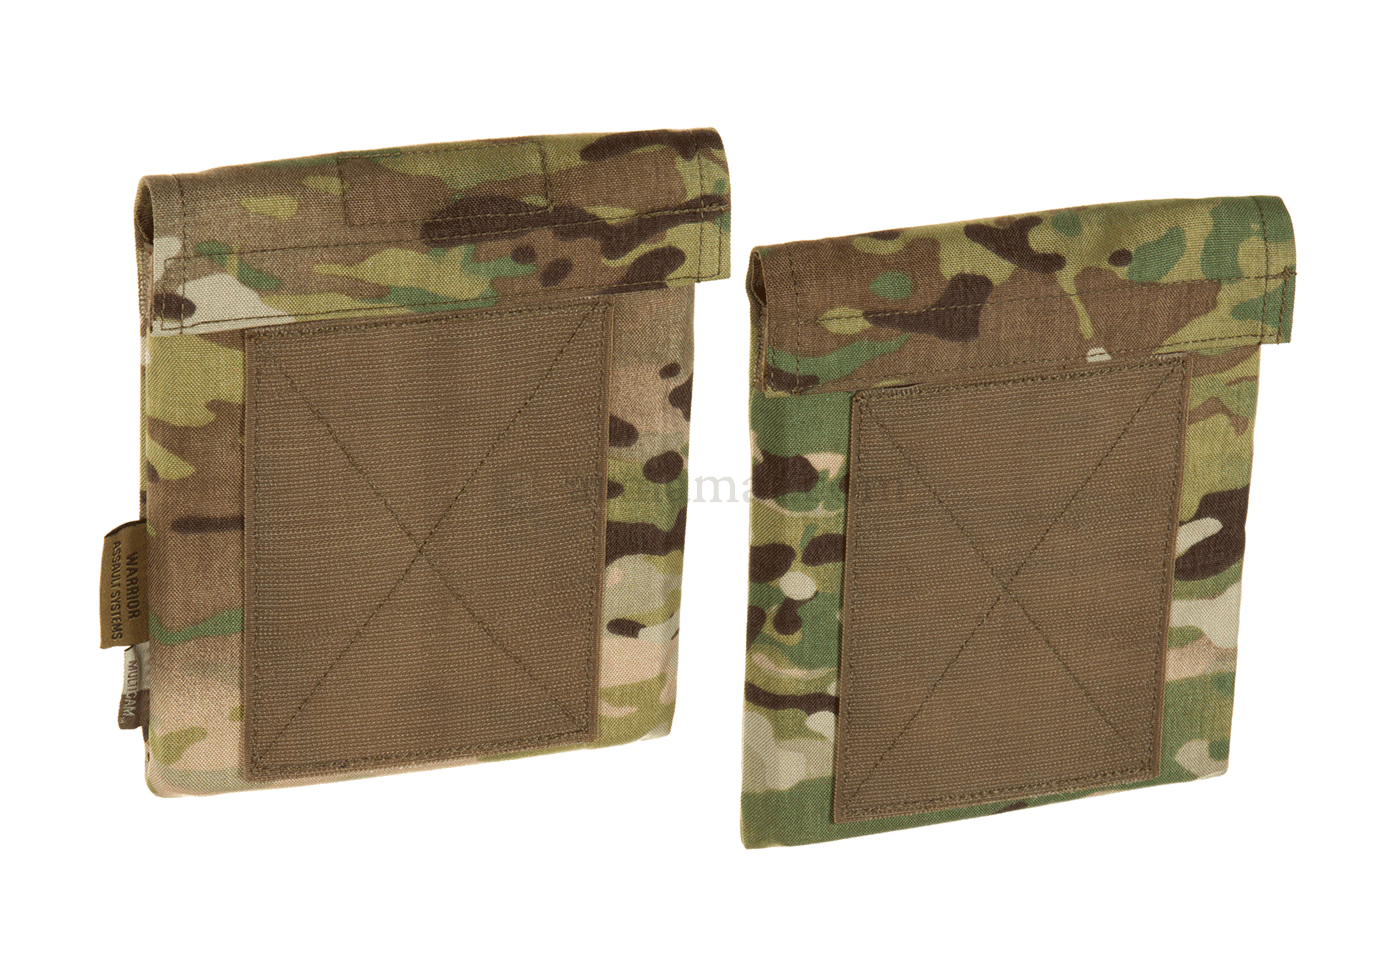 side armor pouches dcs ricas multicam warrior accessoires gilets load bearing armamat. Black Bedroom Furniture Sets. Home Design Ideas